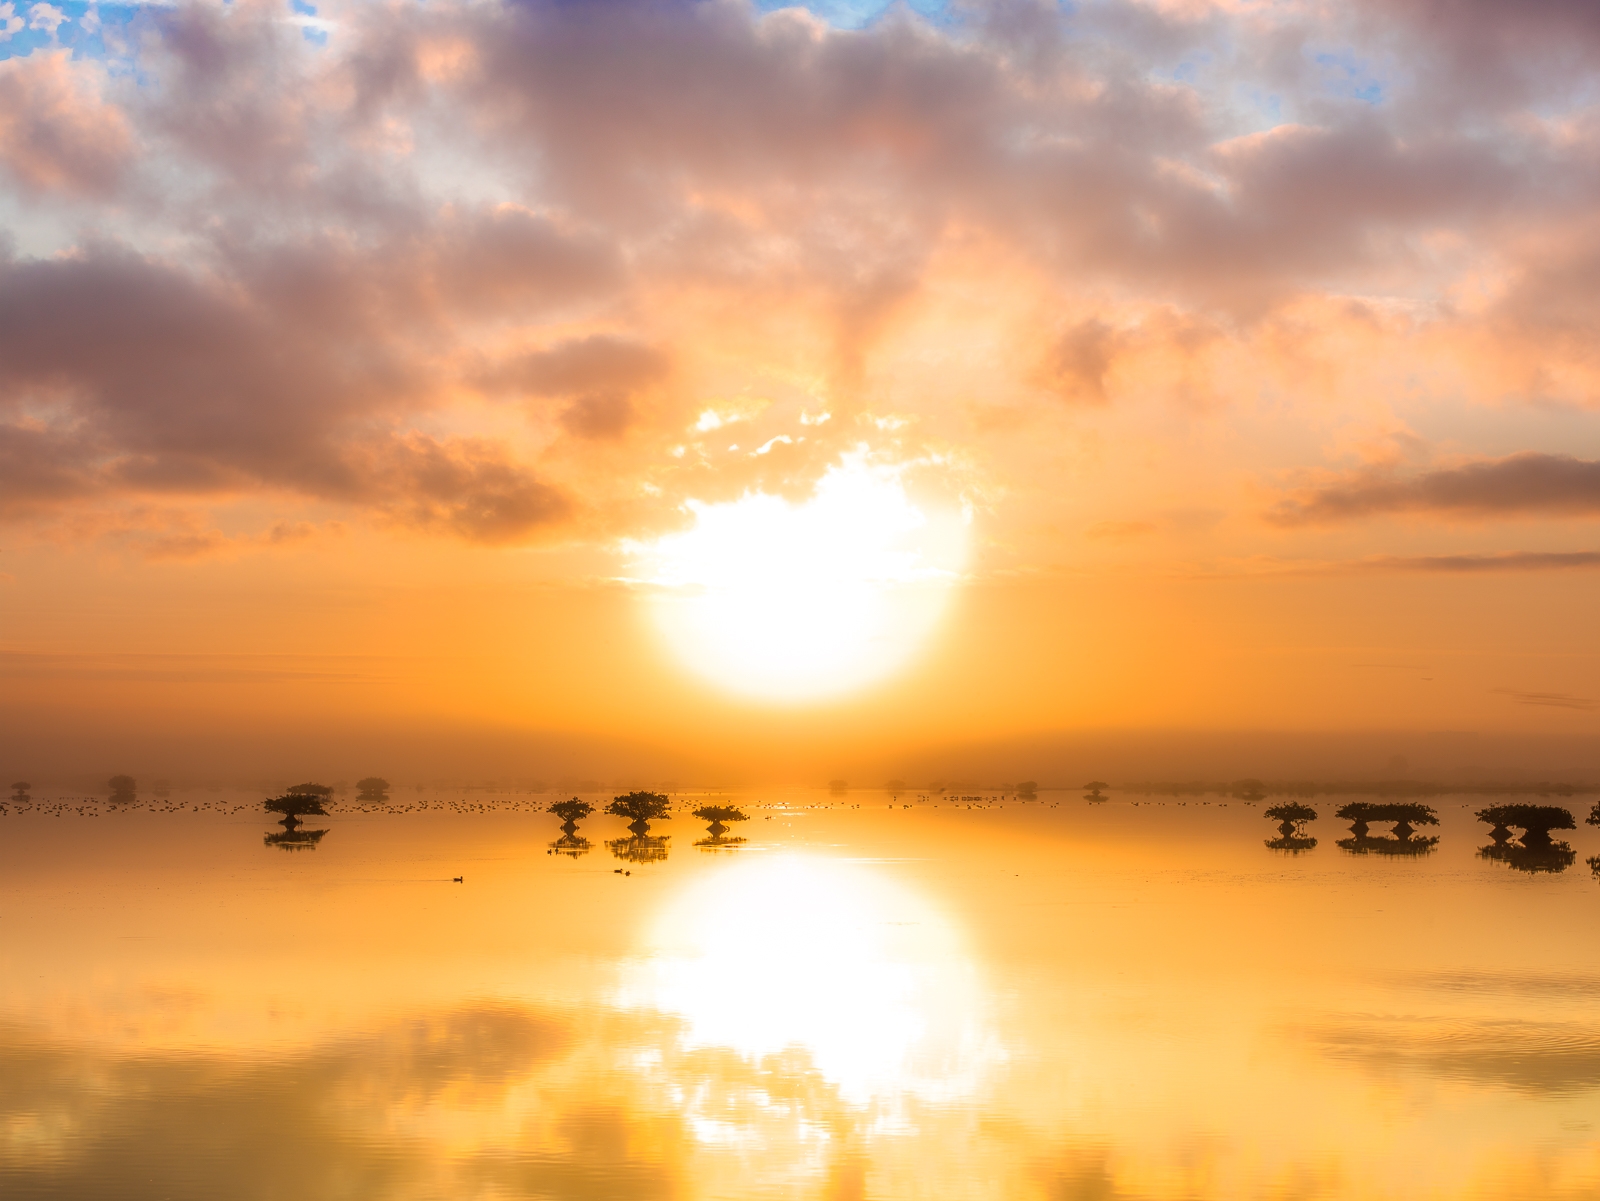 Florida is full of surprises and this sunrise caught me off guard. The ducks swimming around in this pristine environment and...